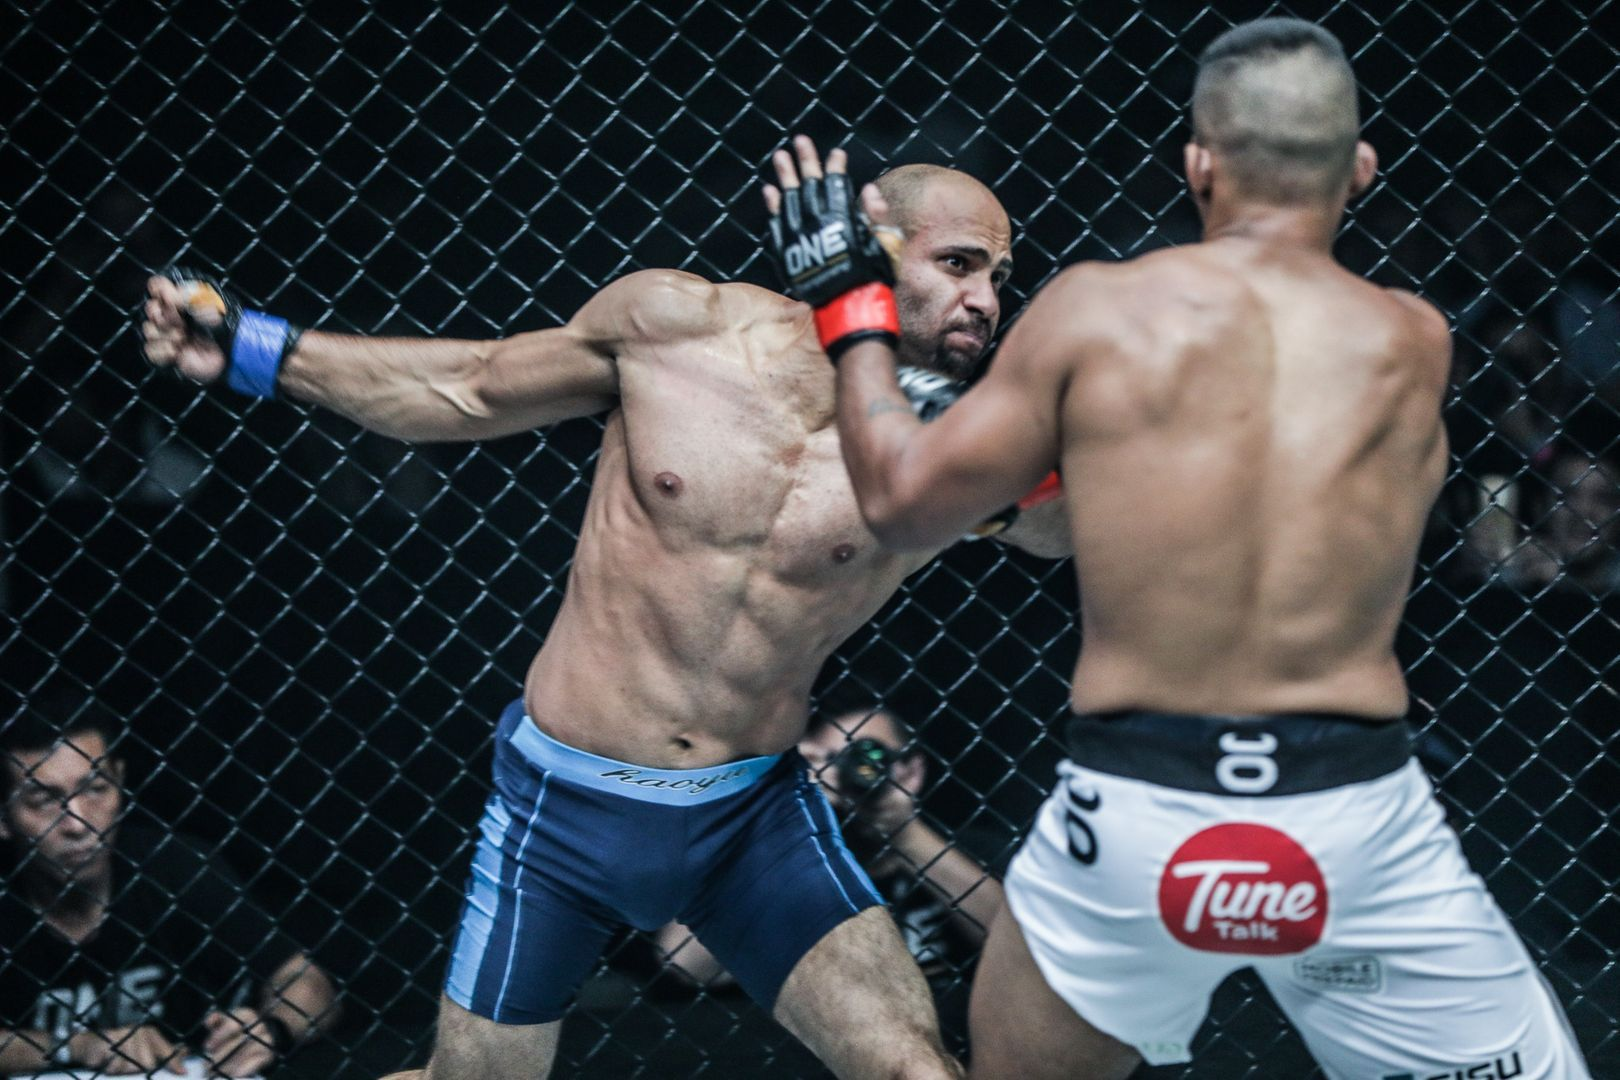 Egyptian mixed martial artist Sherif Mohamed in action in ONE Championship